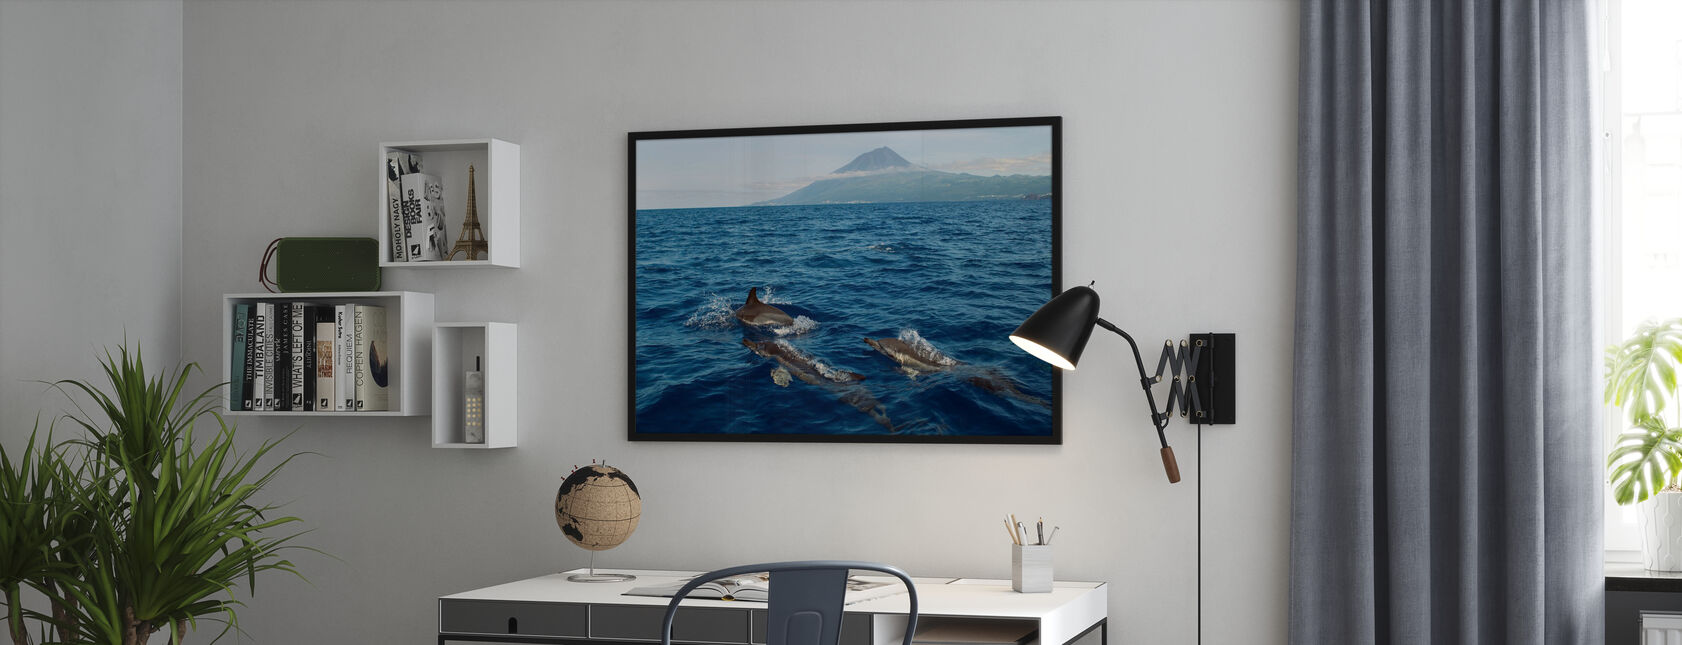 Dolphins in the Azores - Poster - Office